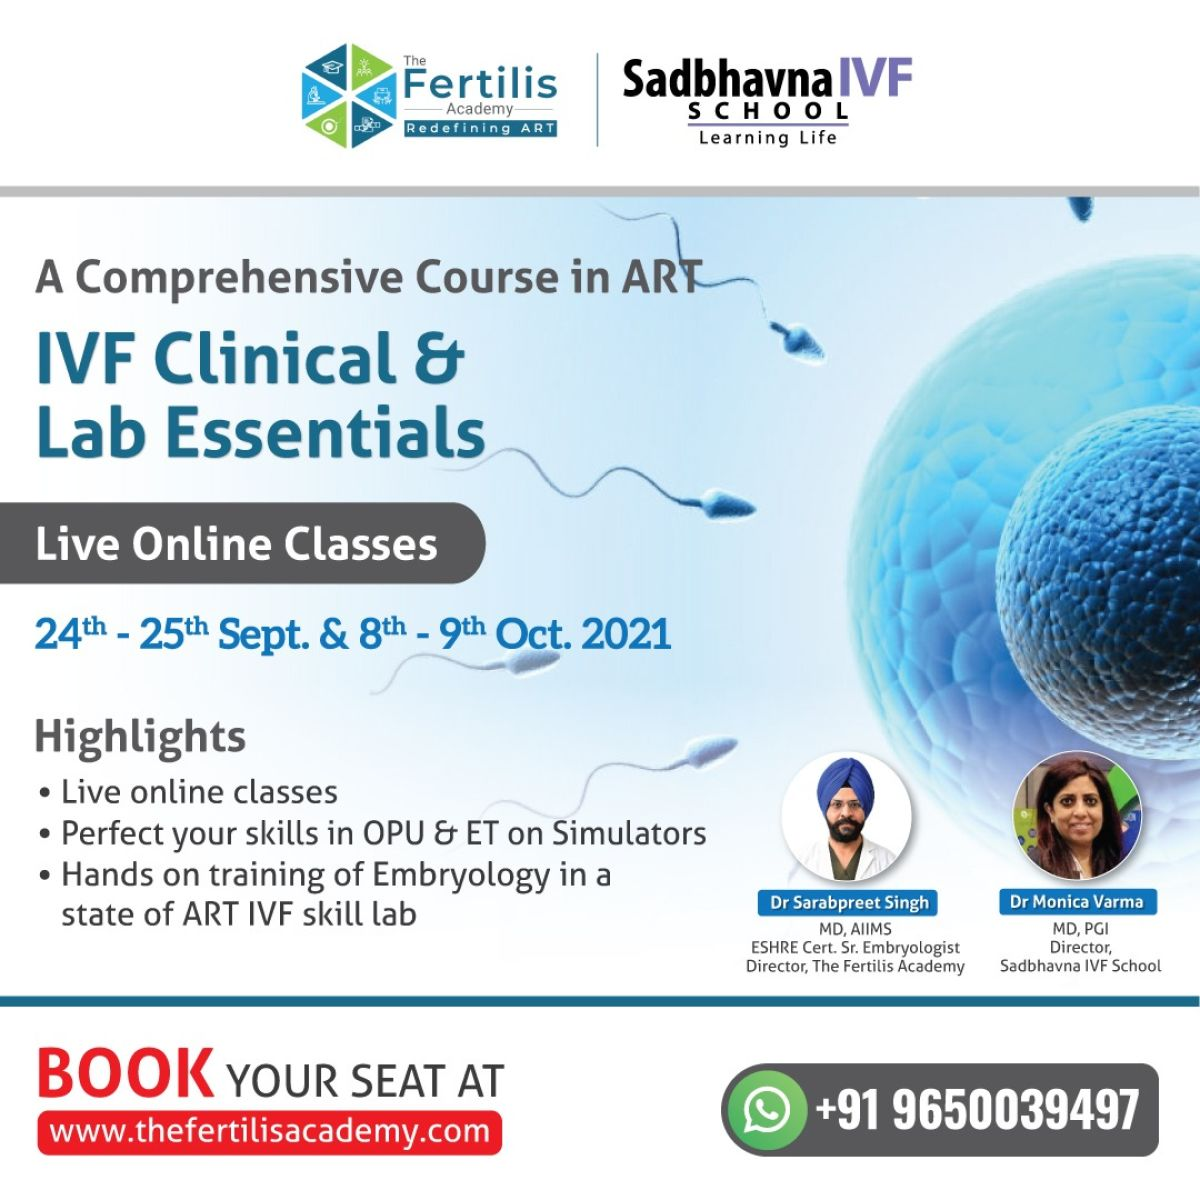 IVF Clinical and Lab Essentials: A Comprehensive Course